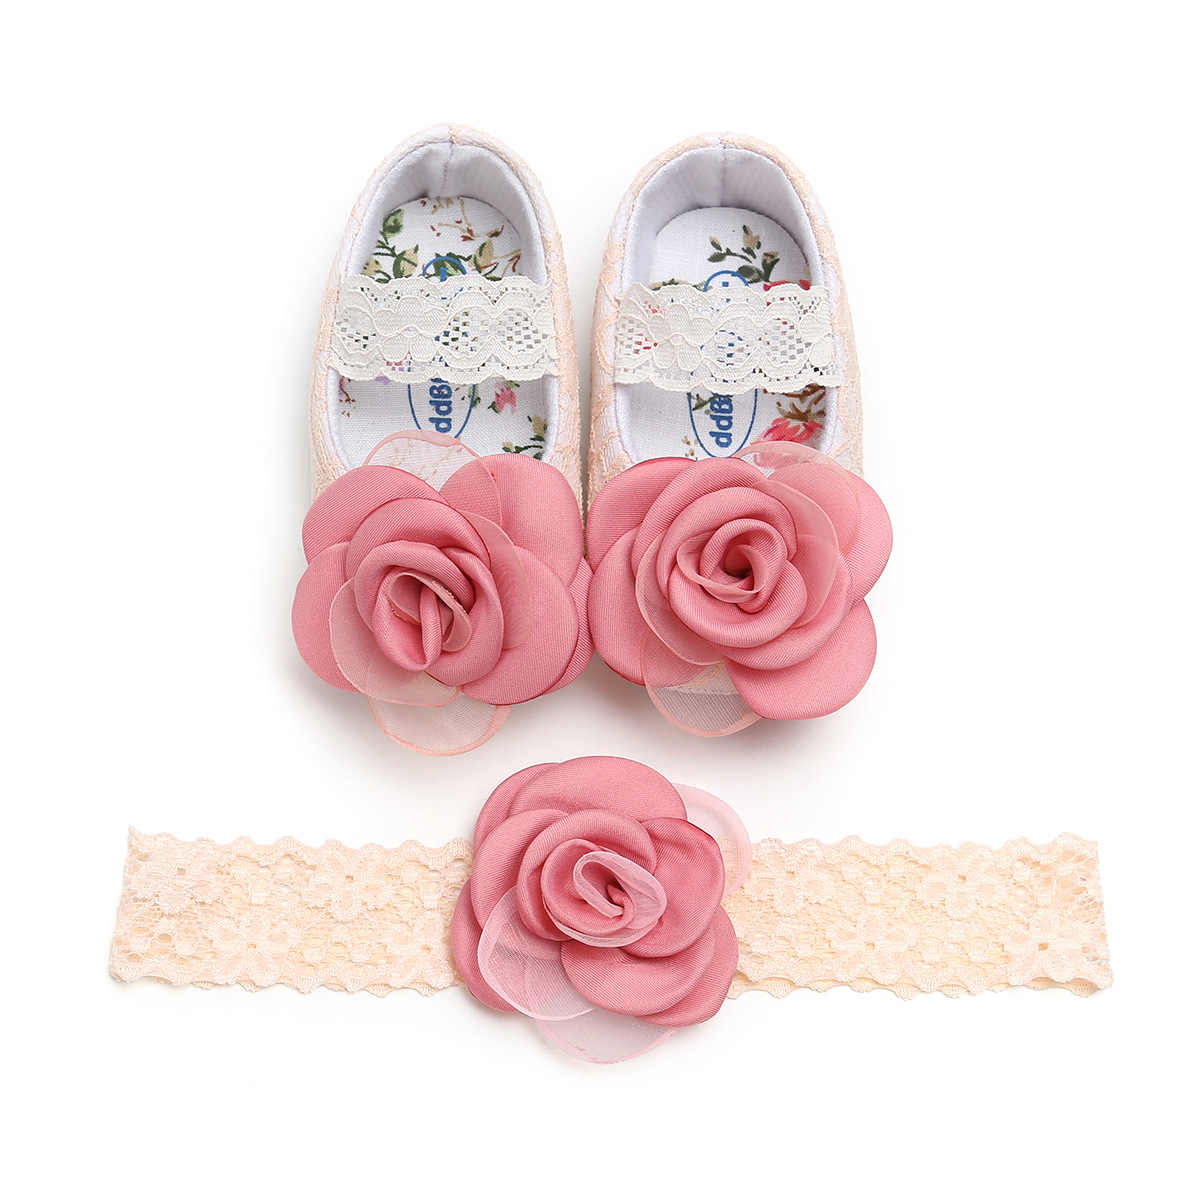 Baby Girl Lace Princess Shoes Toddler First Walkers with Flower Headband Soft Soled Non-slip Footwear Prewalkers Newborn Gift